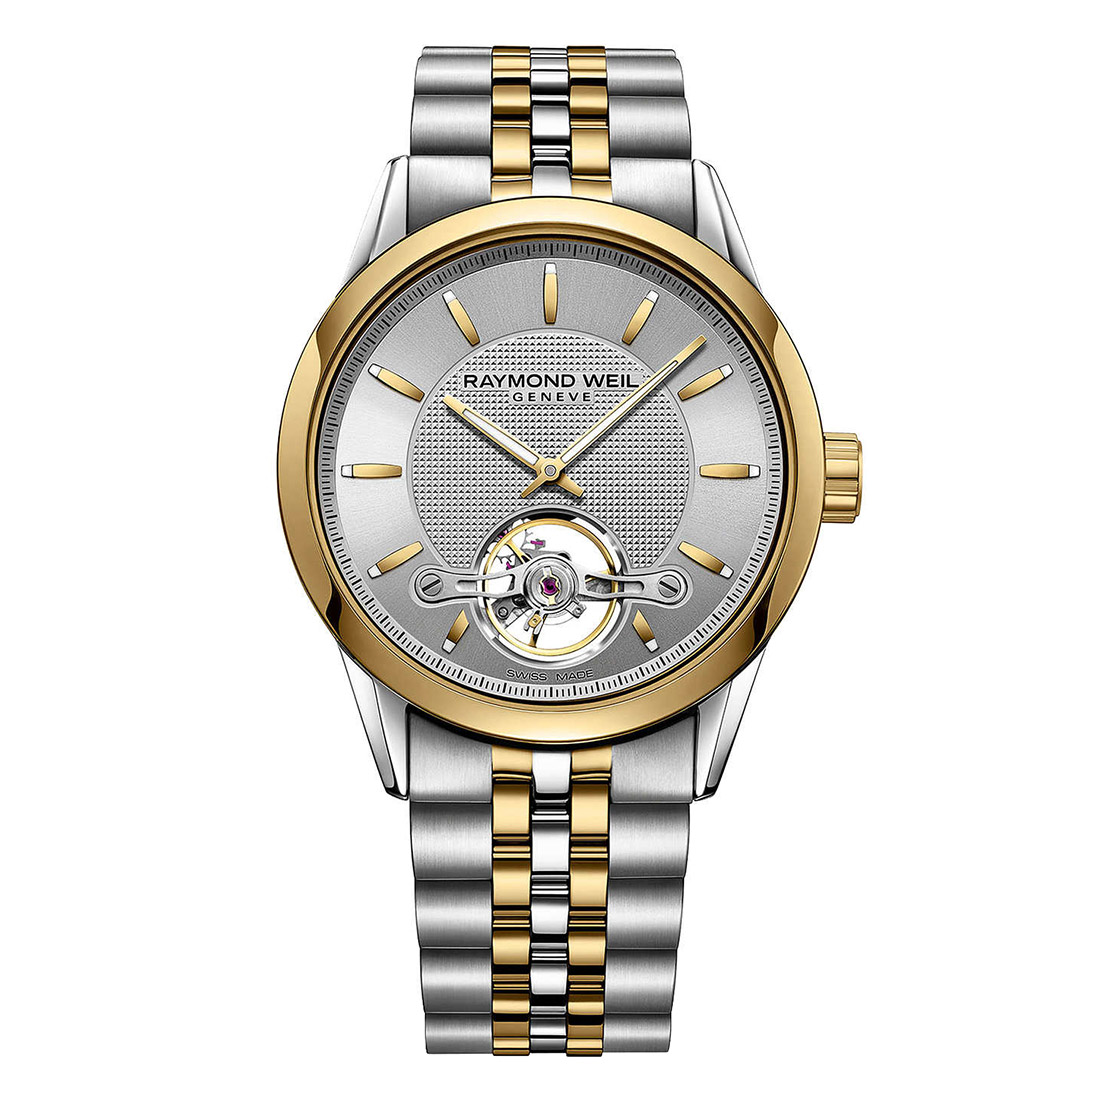 Raymond Weil Yellow Gold Bracelet Watch